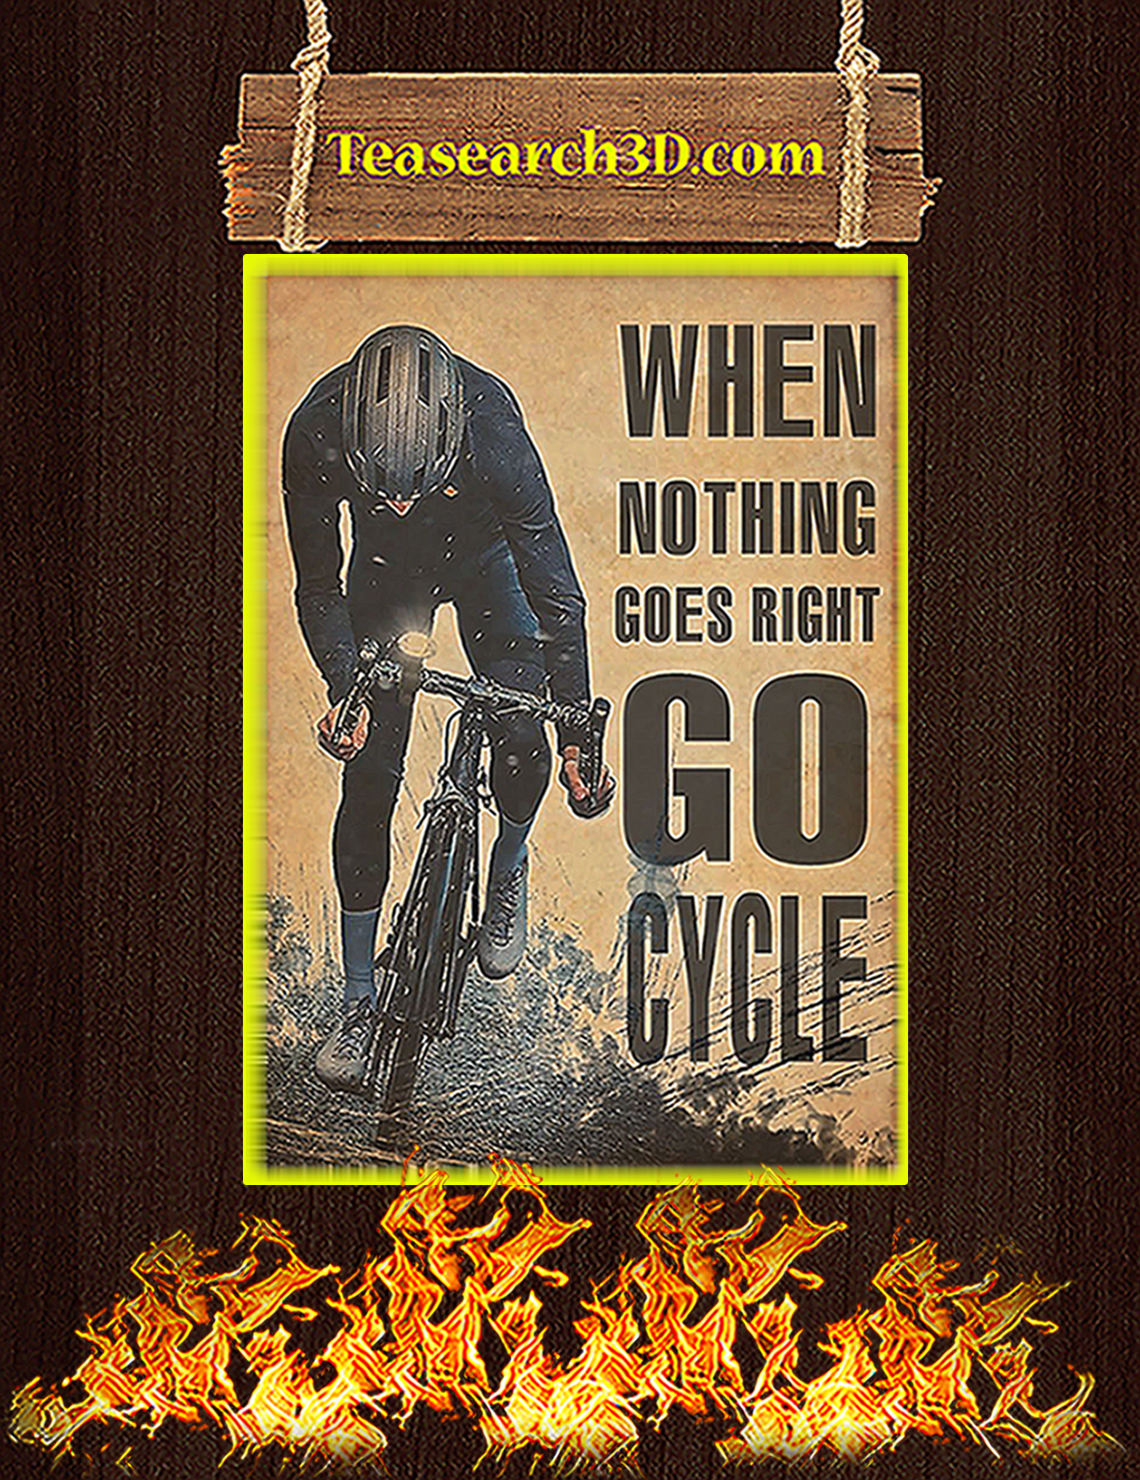 When nothing goes right go cycle poster A3